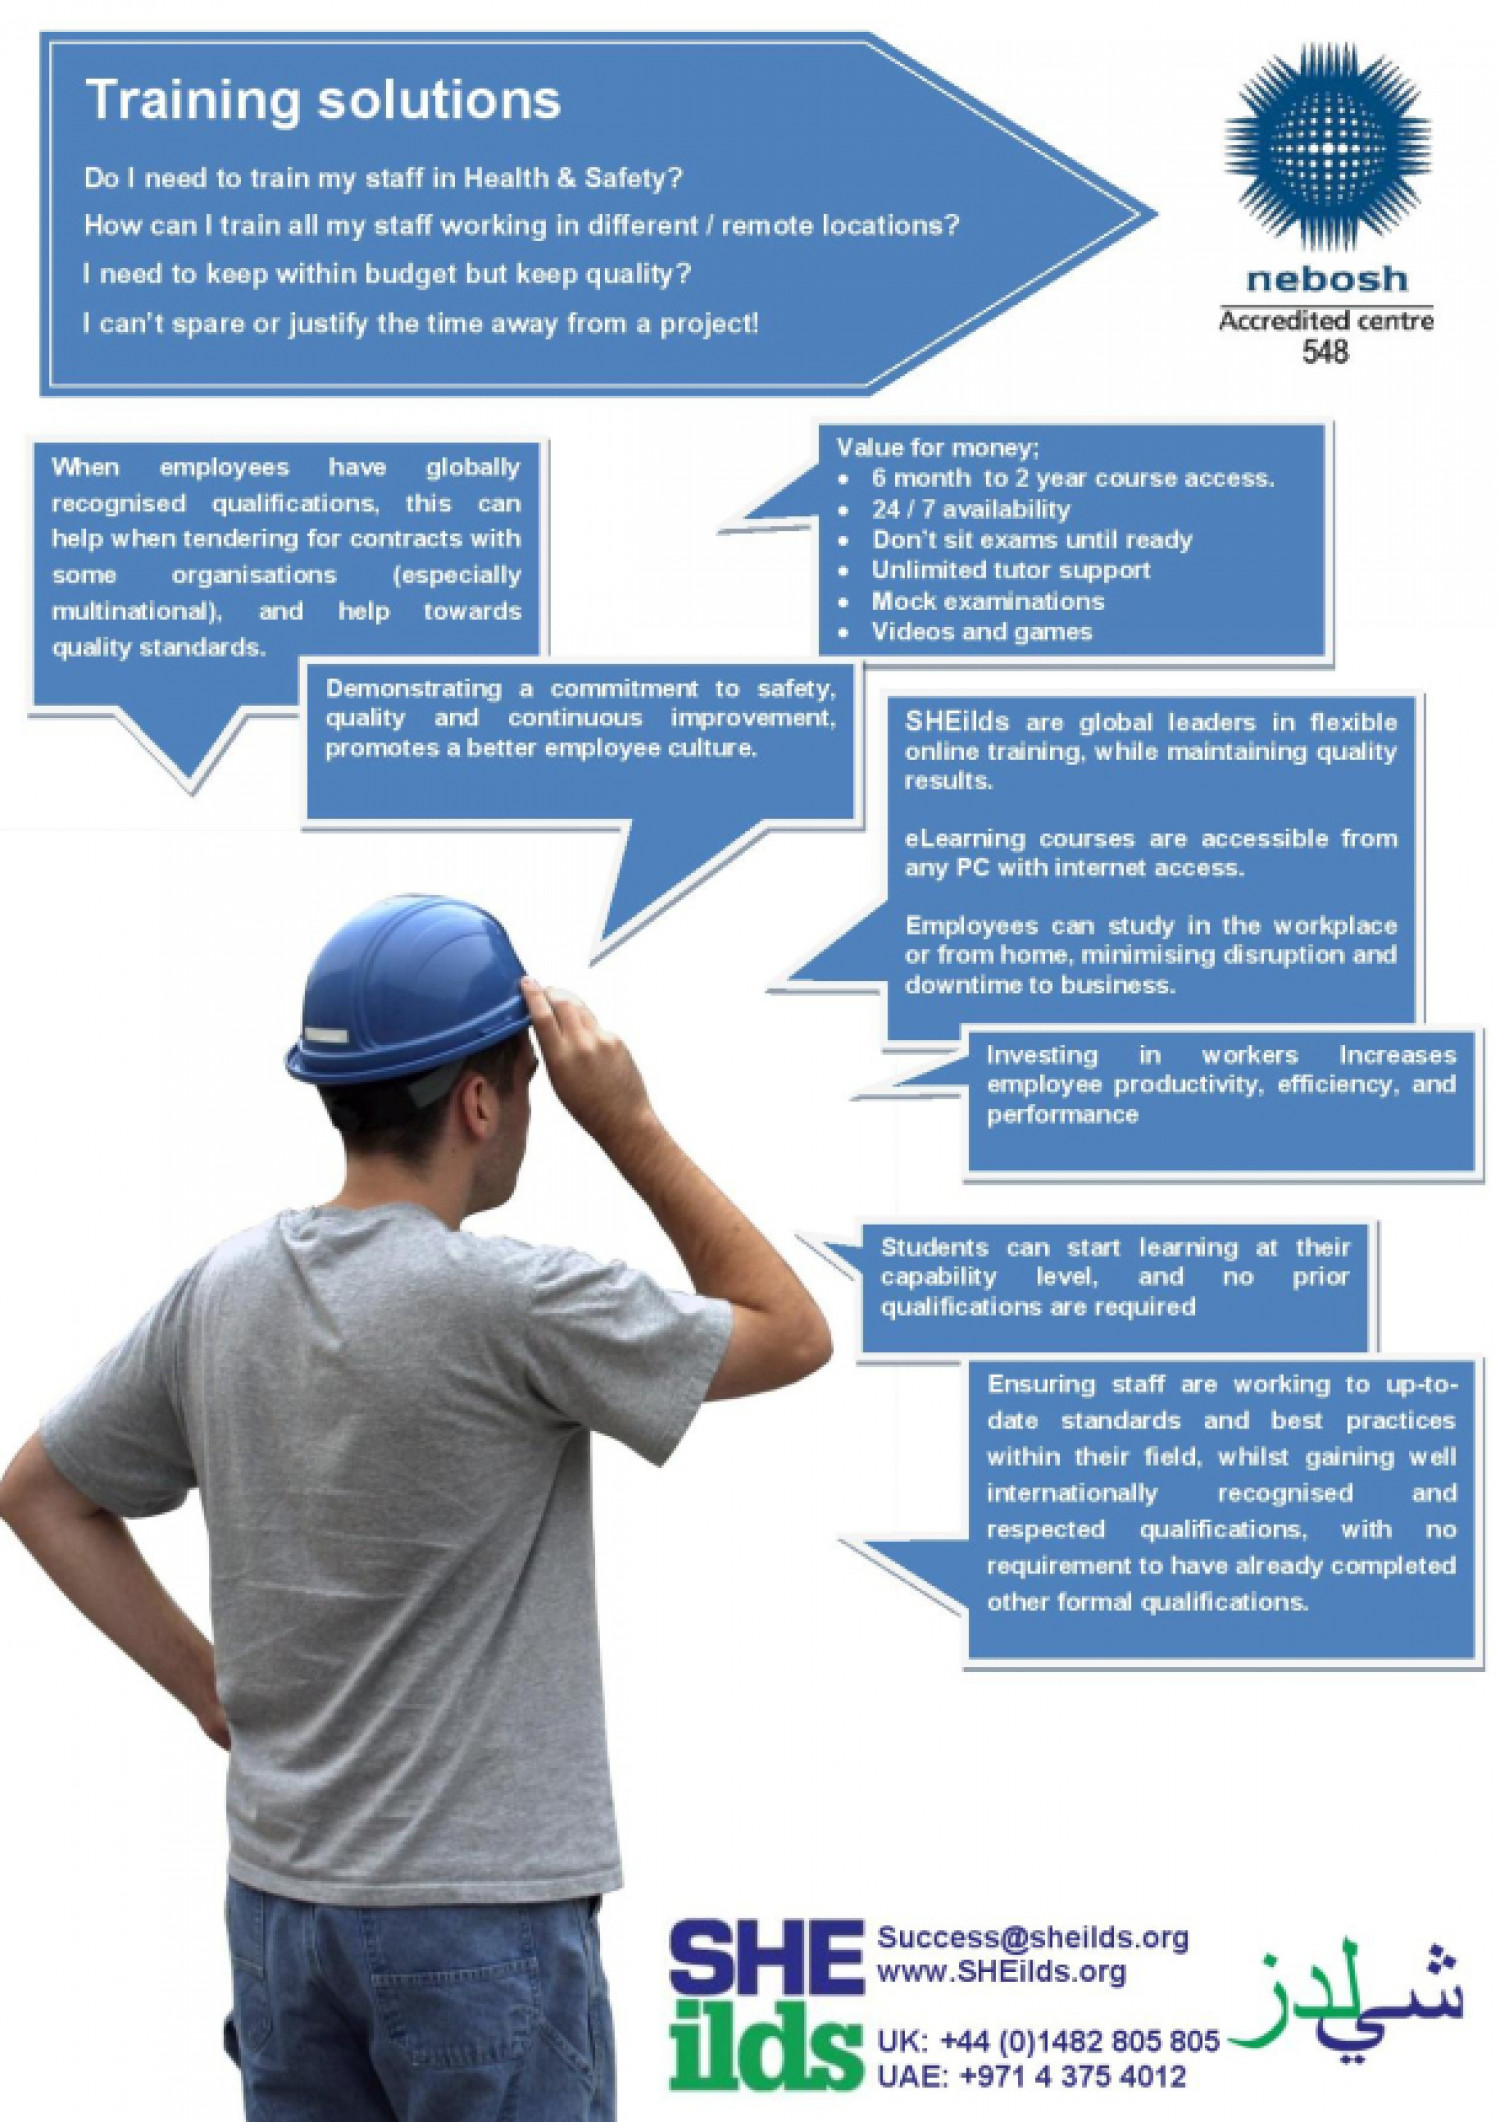 Health and Safety Training Solution Infographic